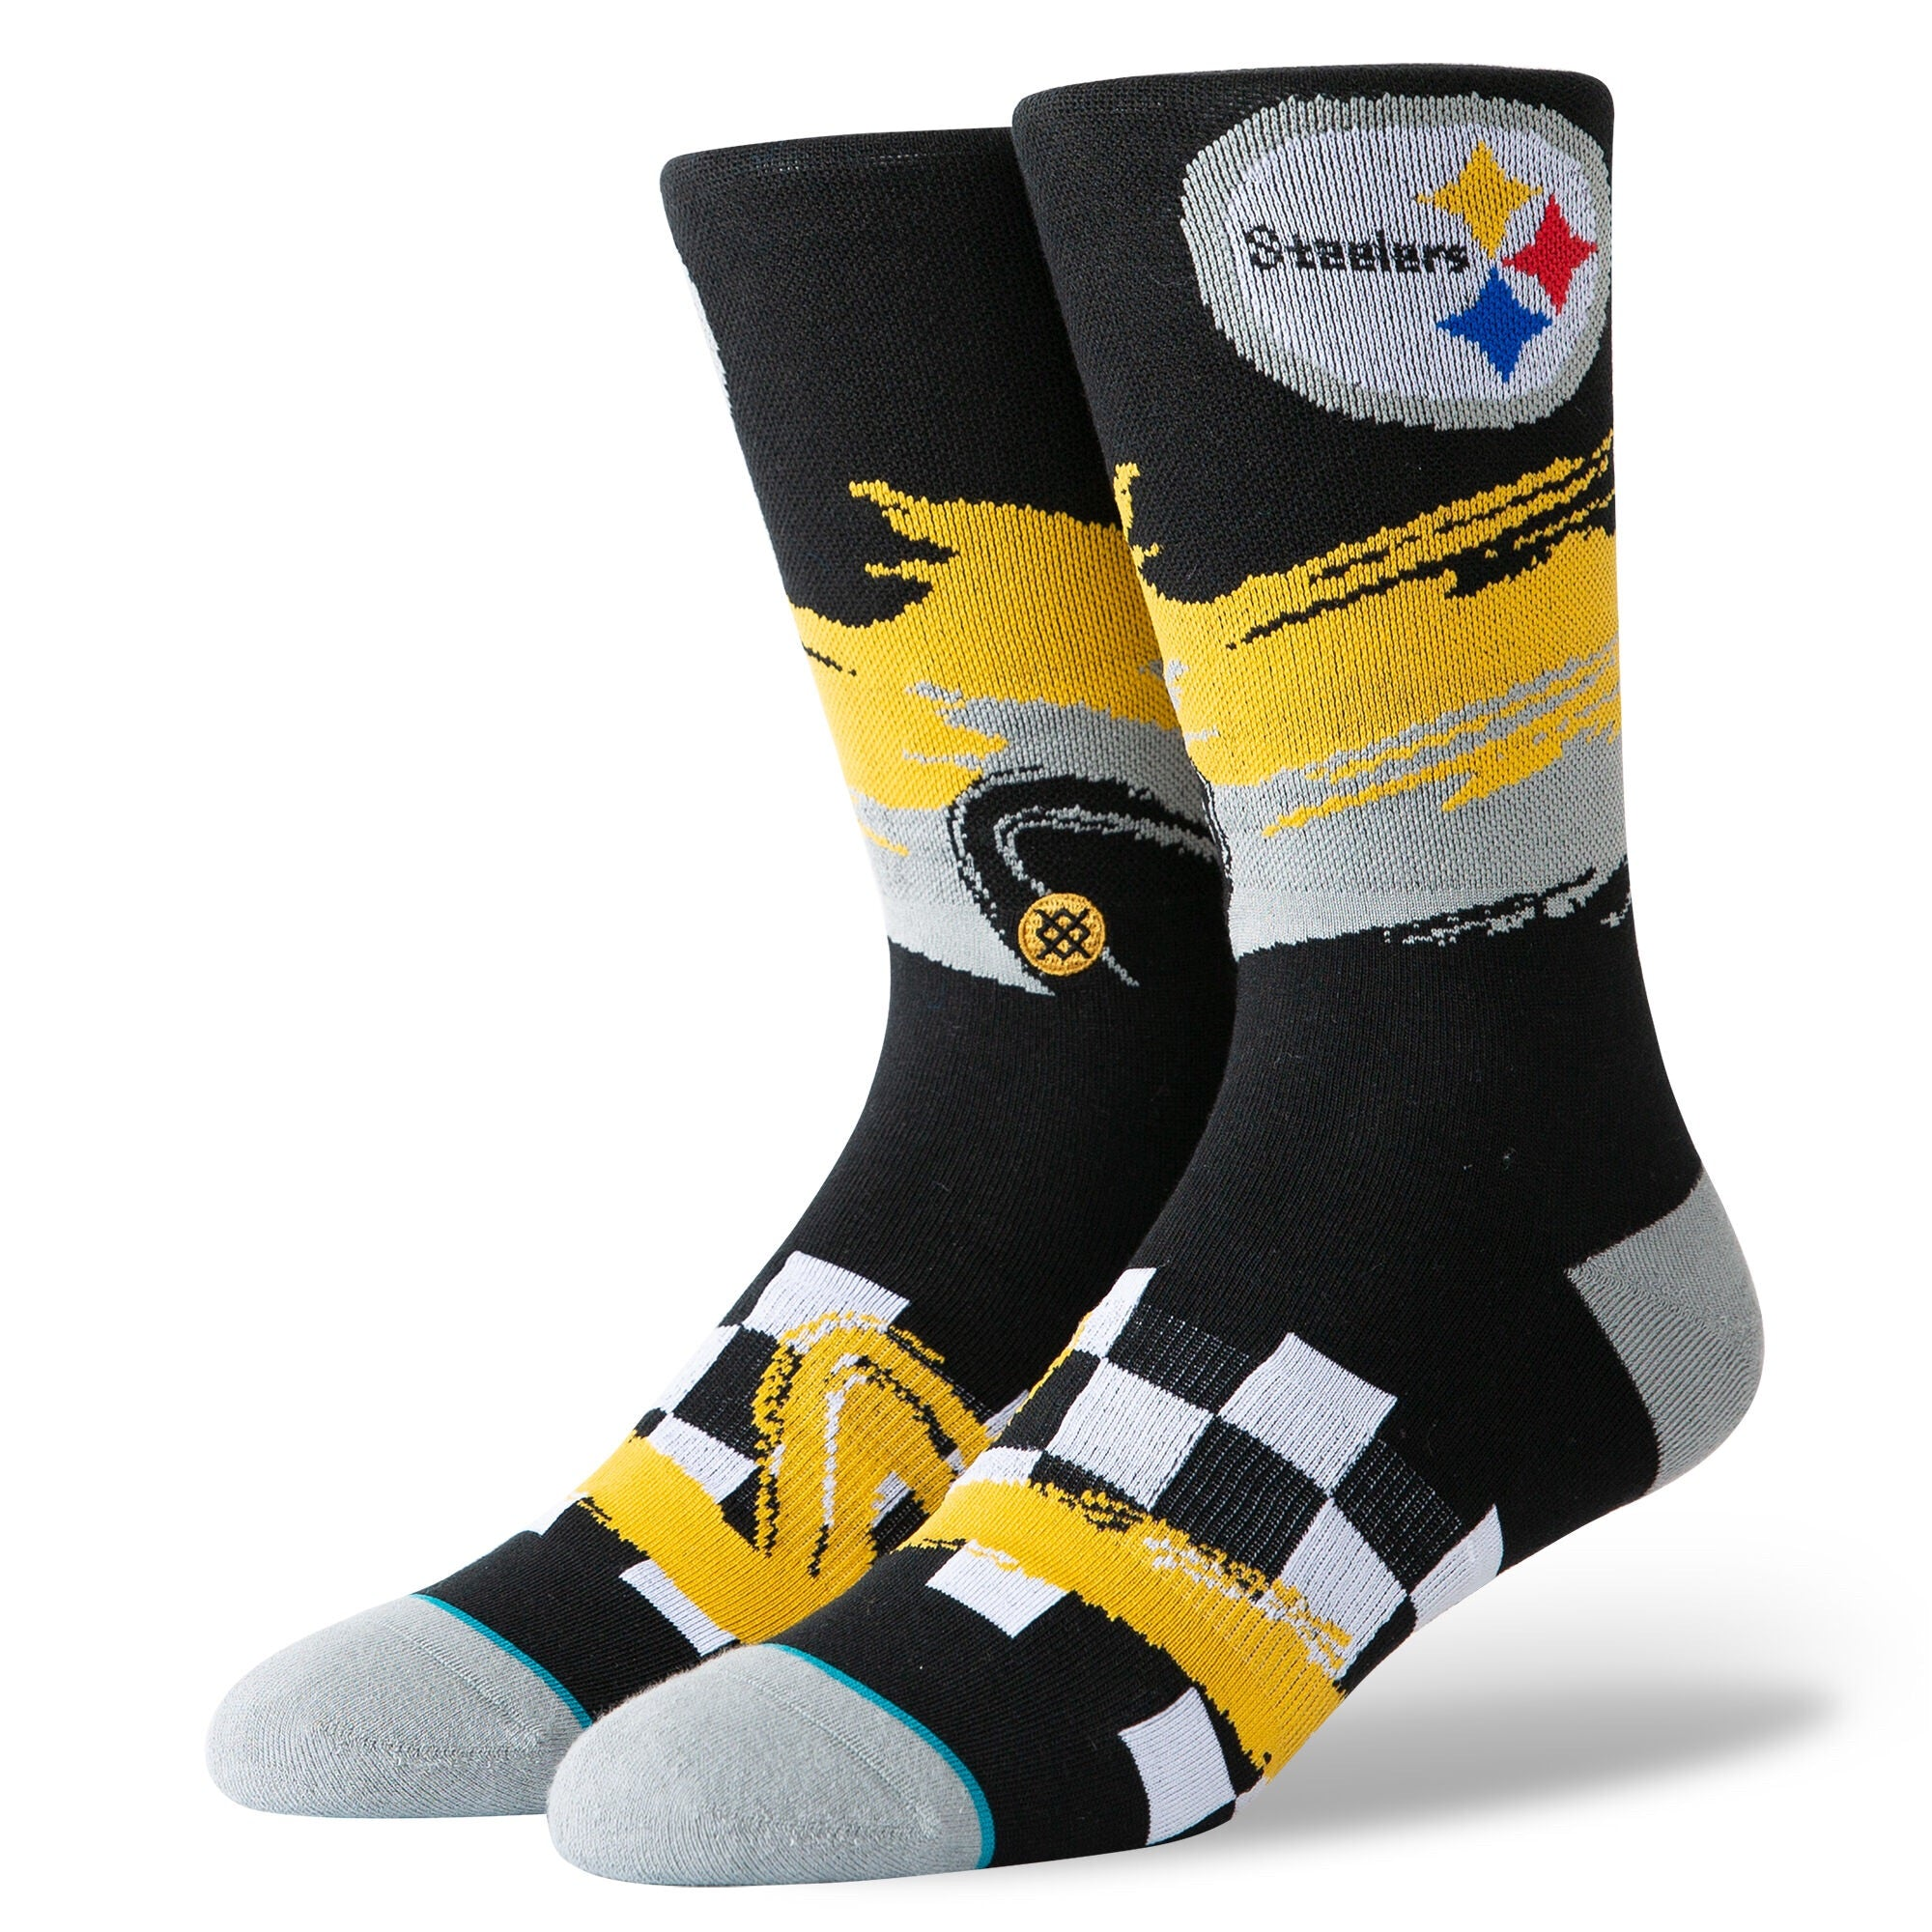 STEELERS WAVE RACER - BLK - L